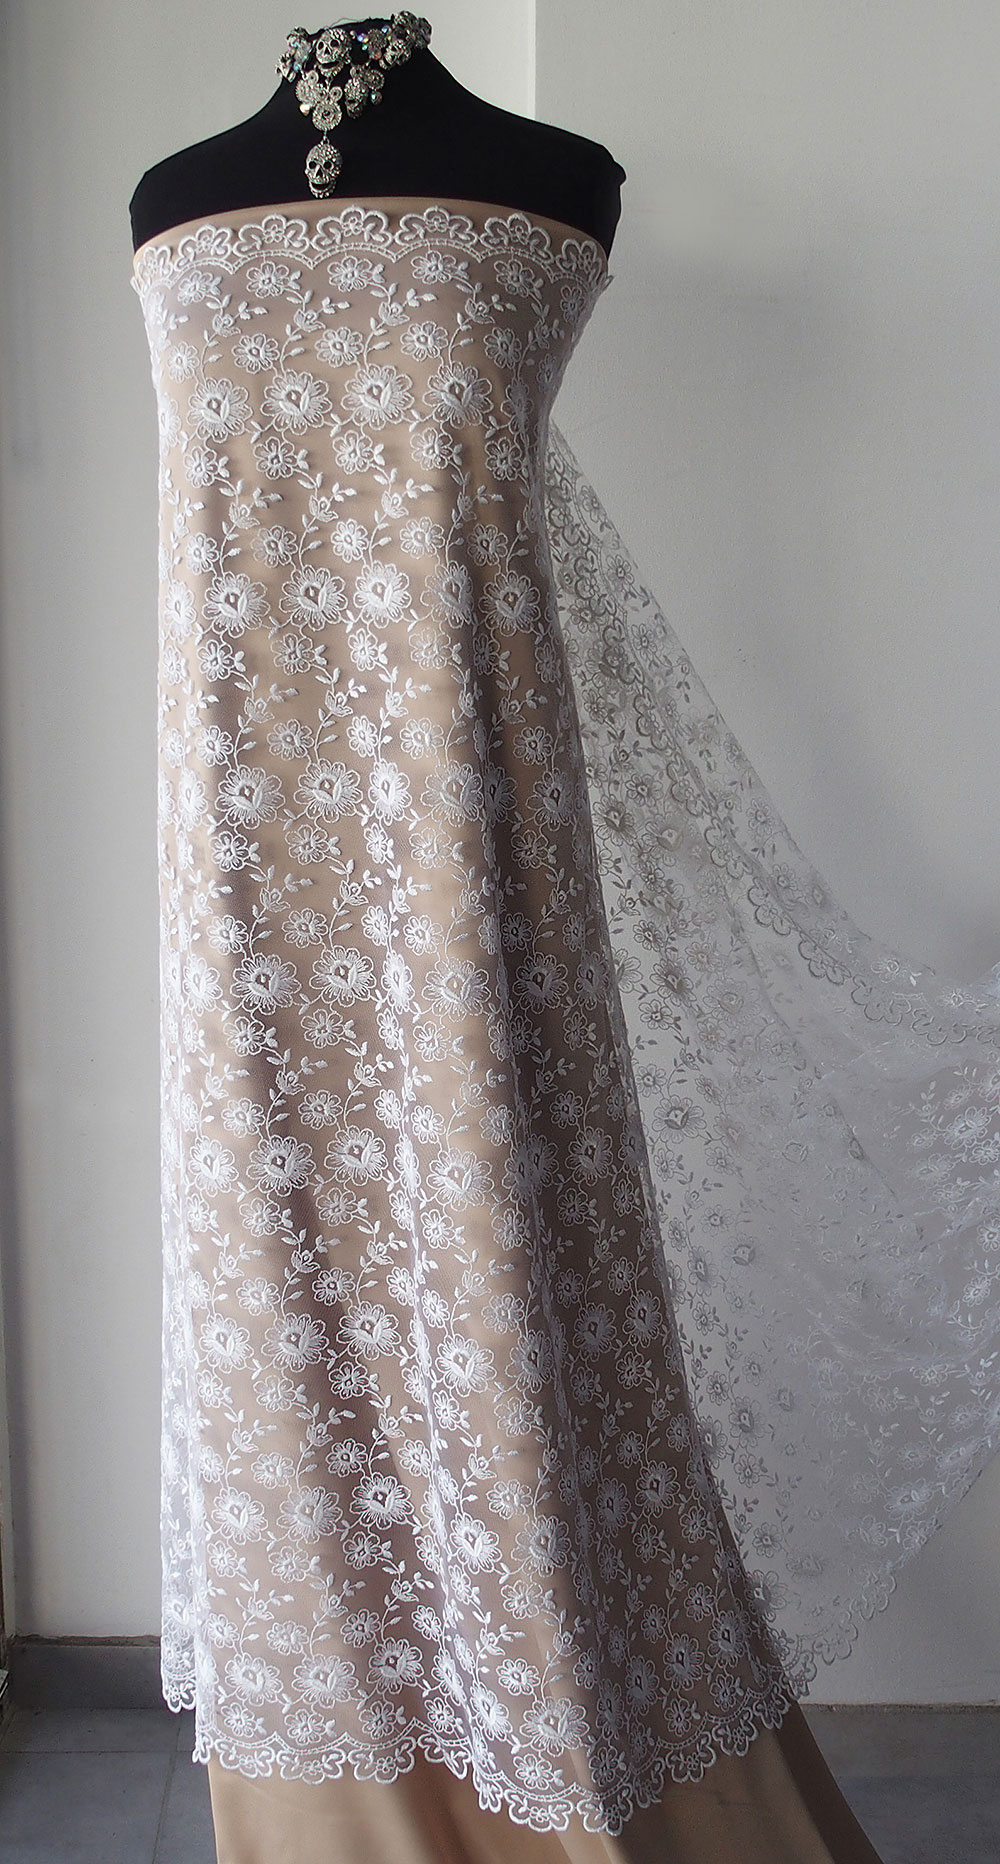 Ivory Off White Bridal Lace Fabric Veiling Scallop Edging